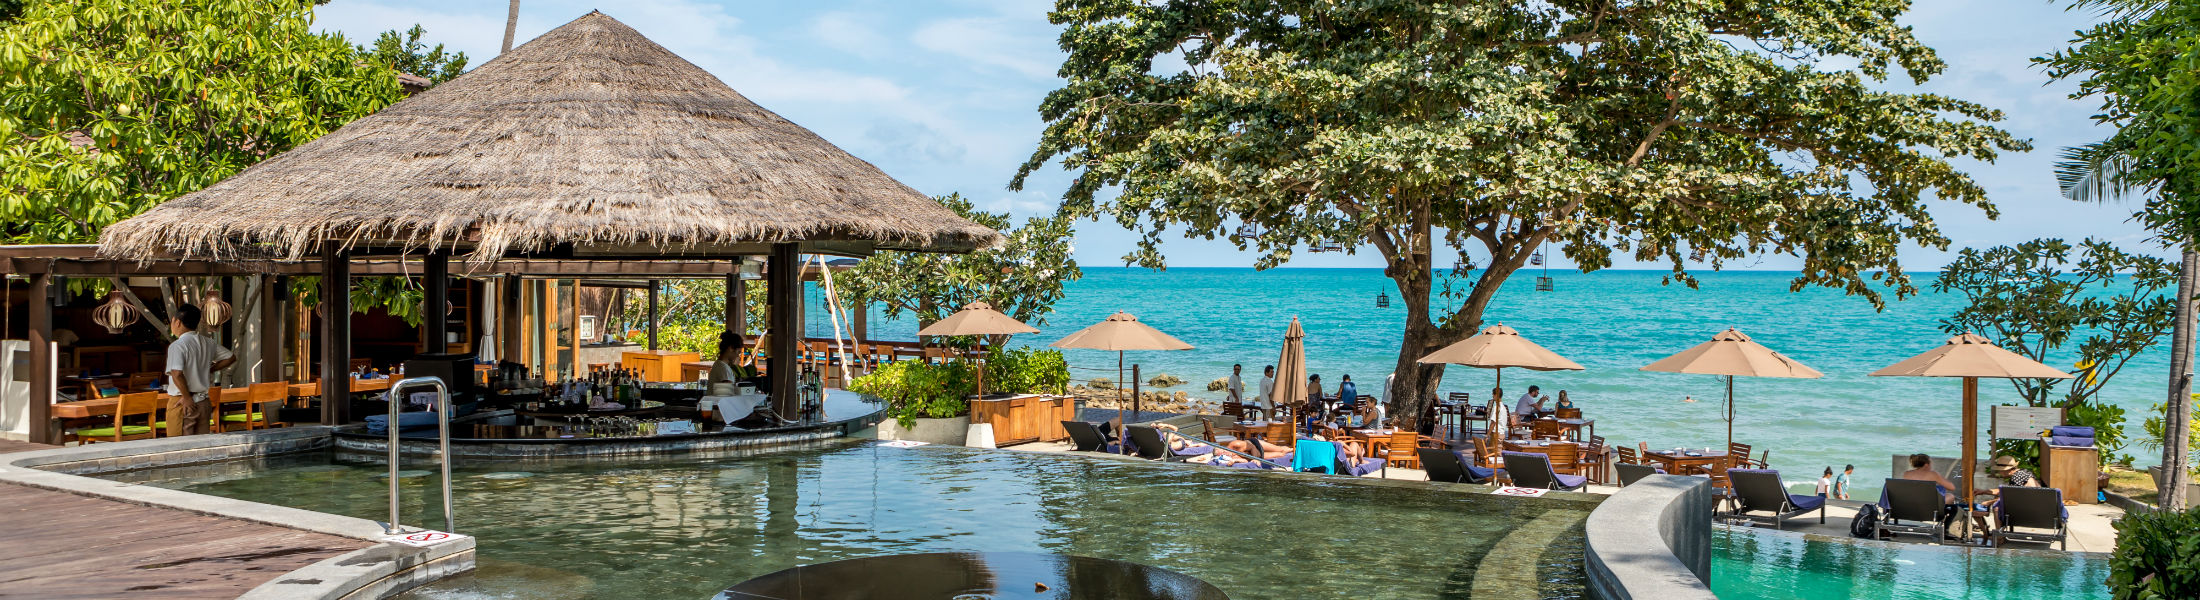 Swim up bar at the Outrigger koh Samui beach resort